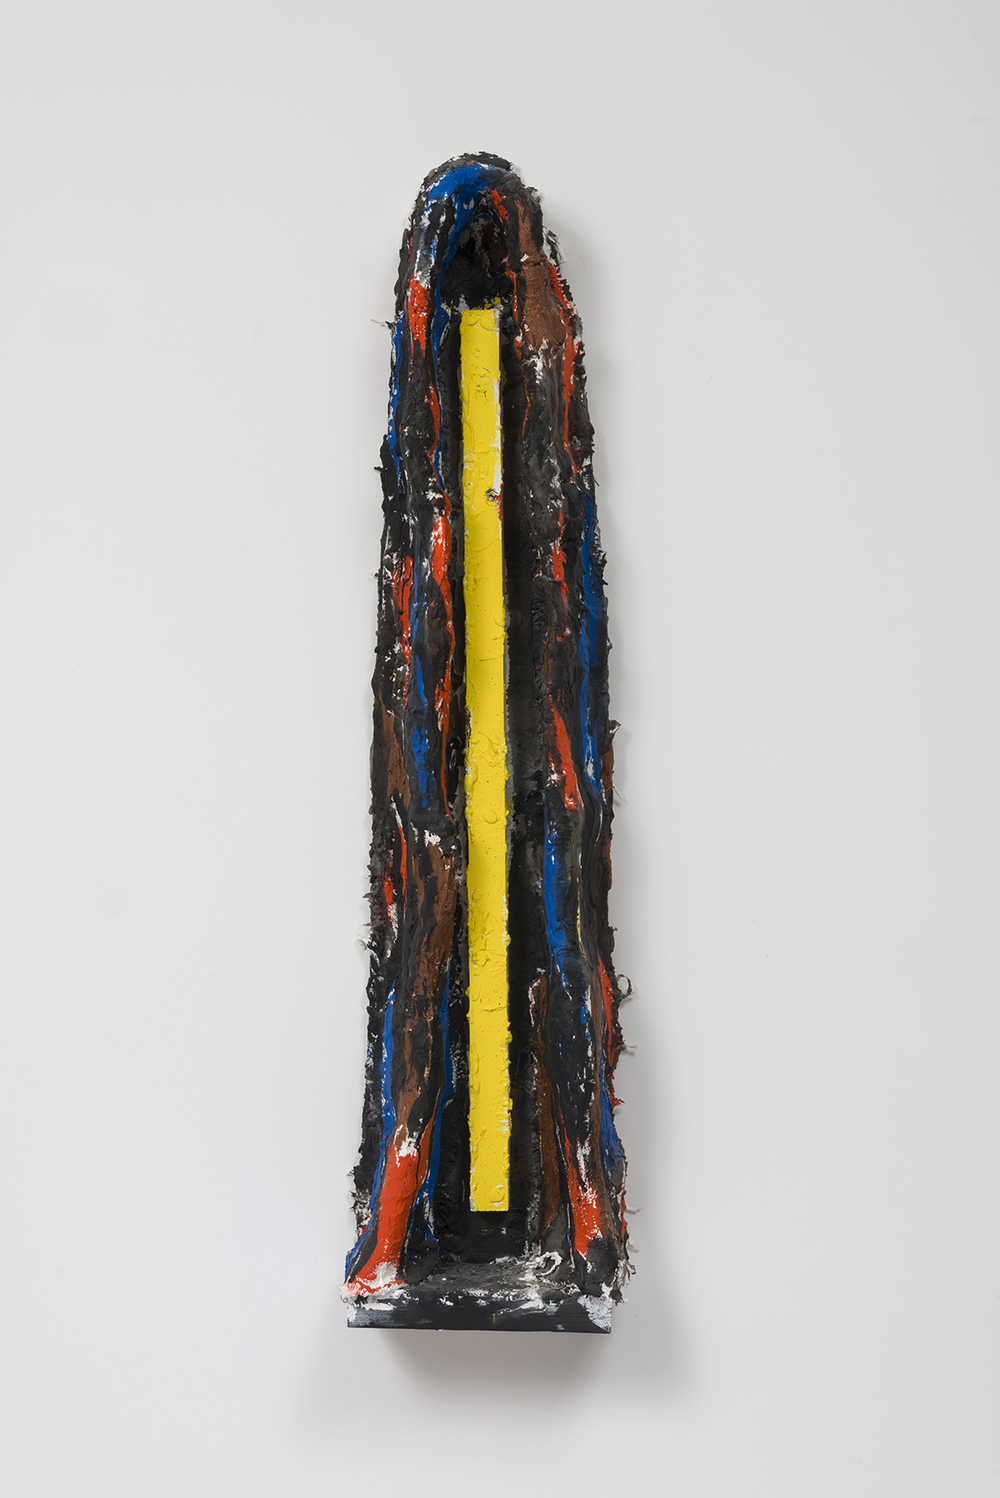 Untitled (Cave 5), 2015  Wood, plaster, burlap, chicken wire, and oil enamel.  46 x 11 x 6 inches